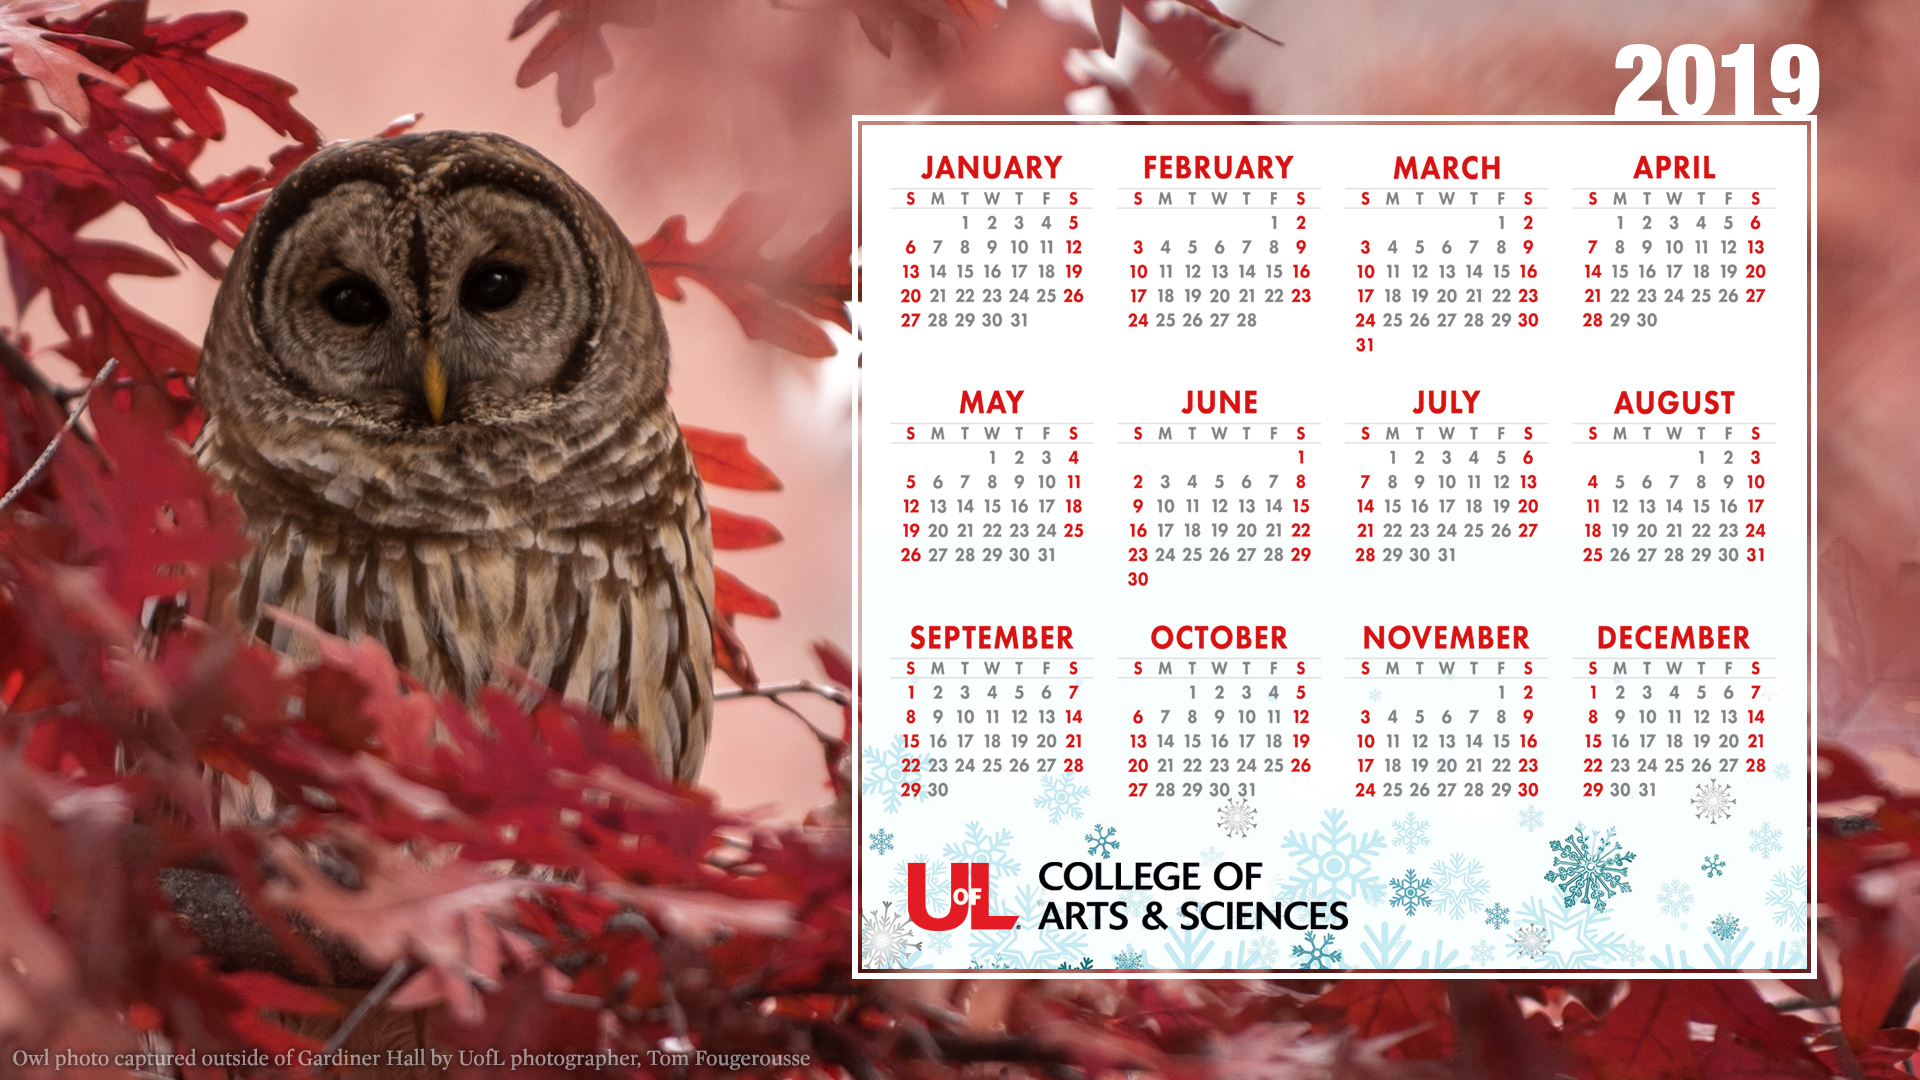 2019 Holiday Calendar Desktop Wallpaper College of Arts Sciences 1920x1080